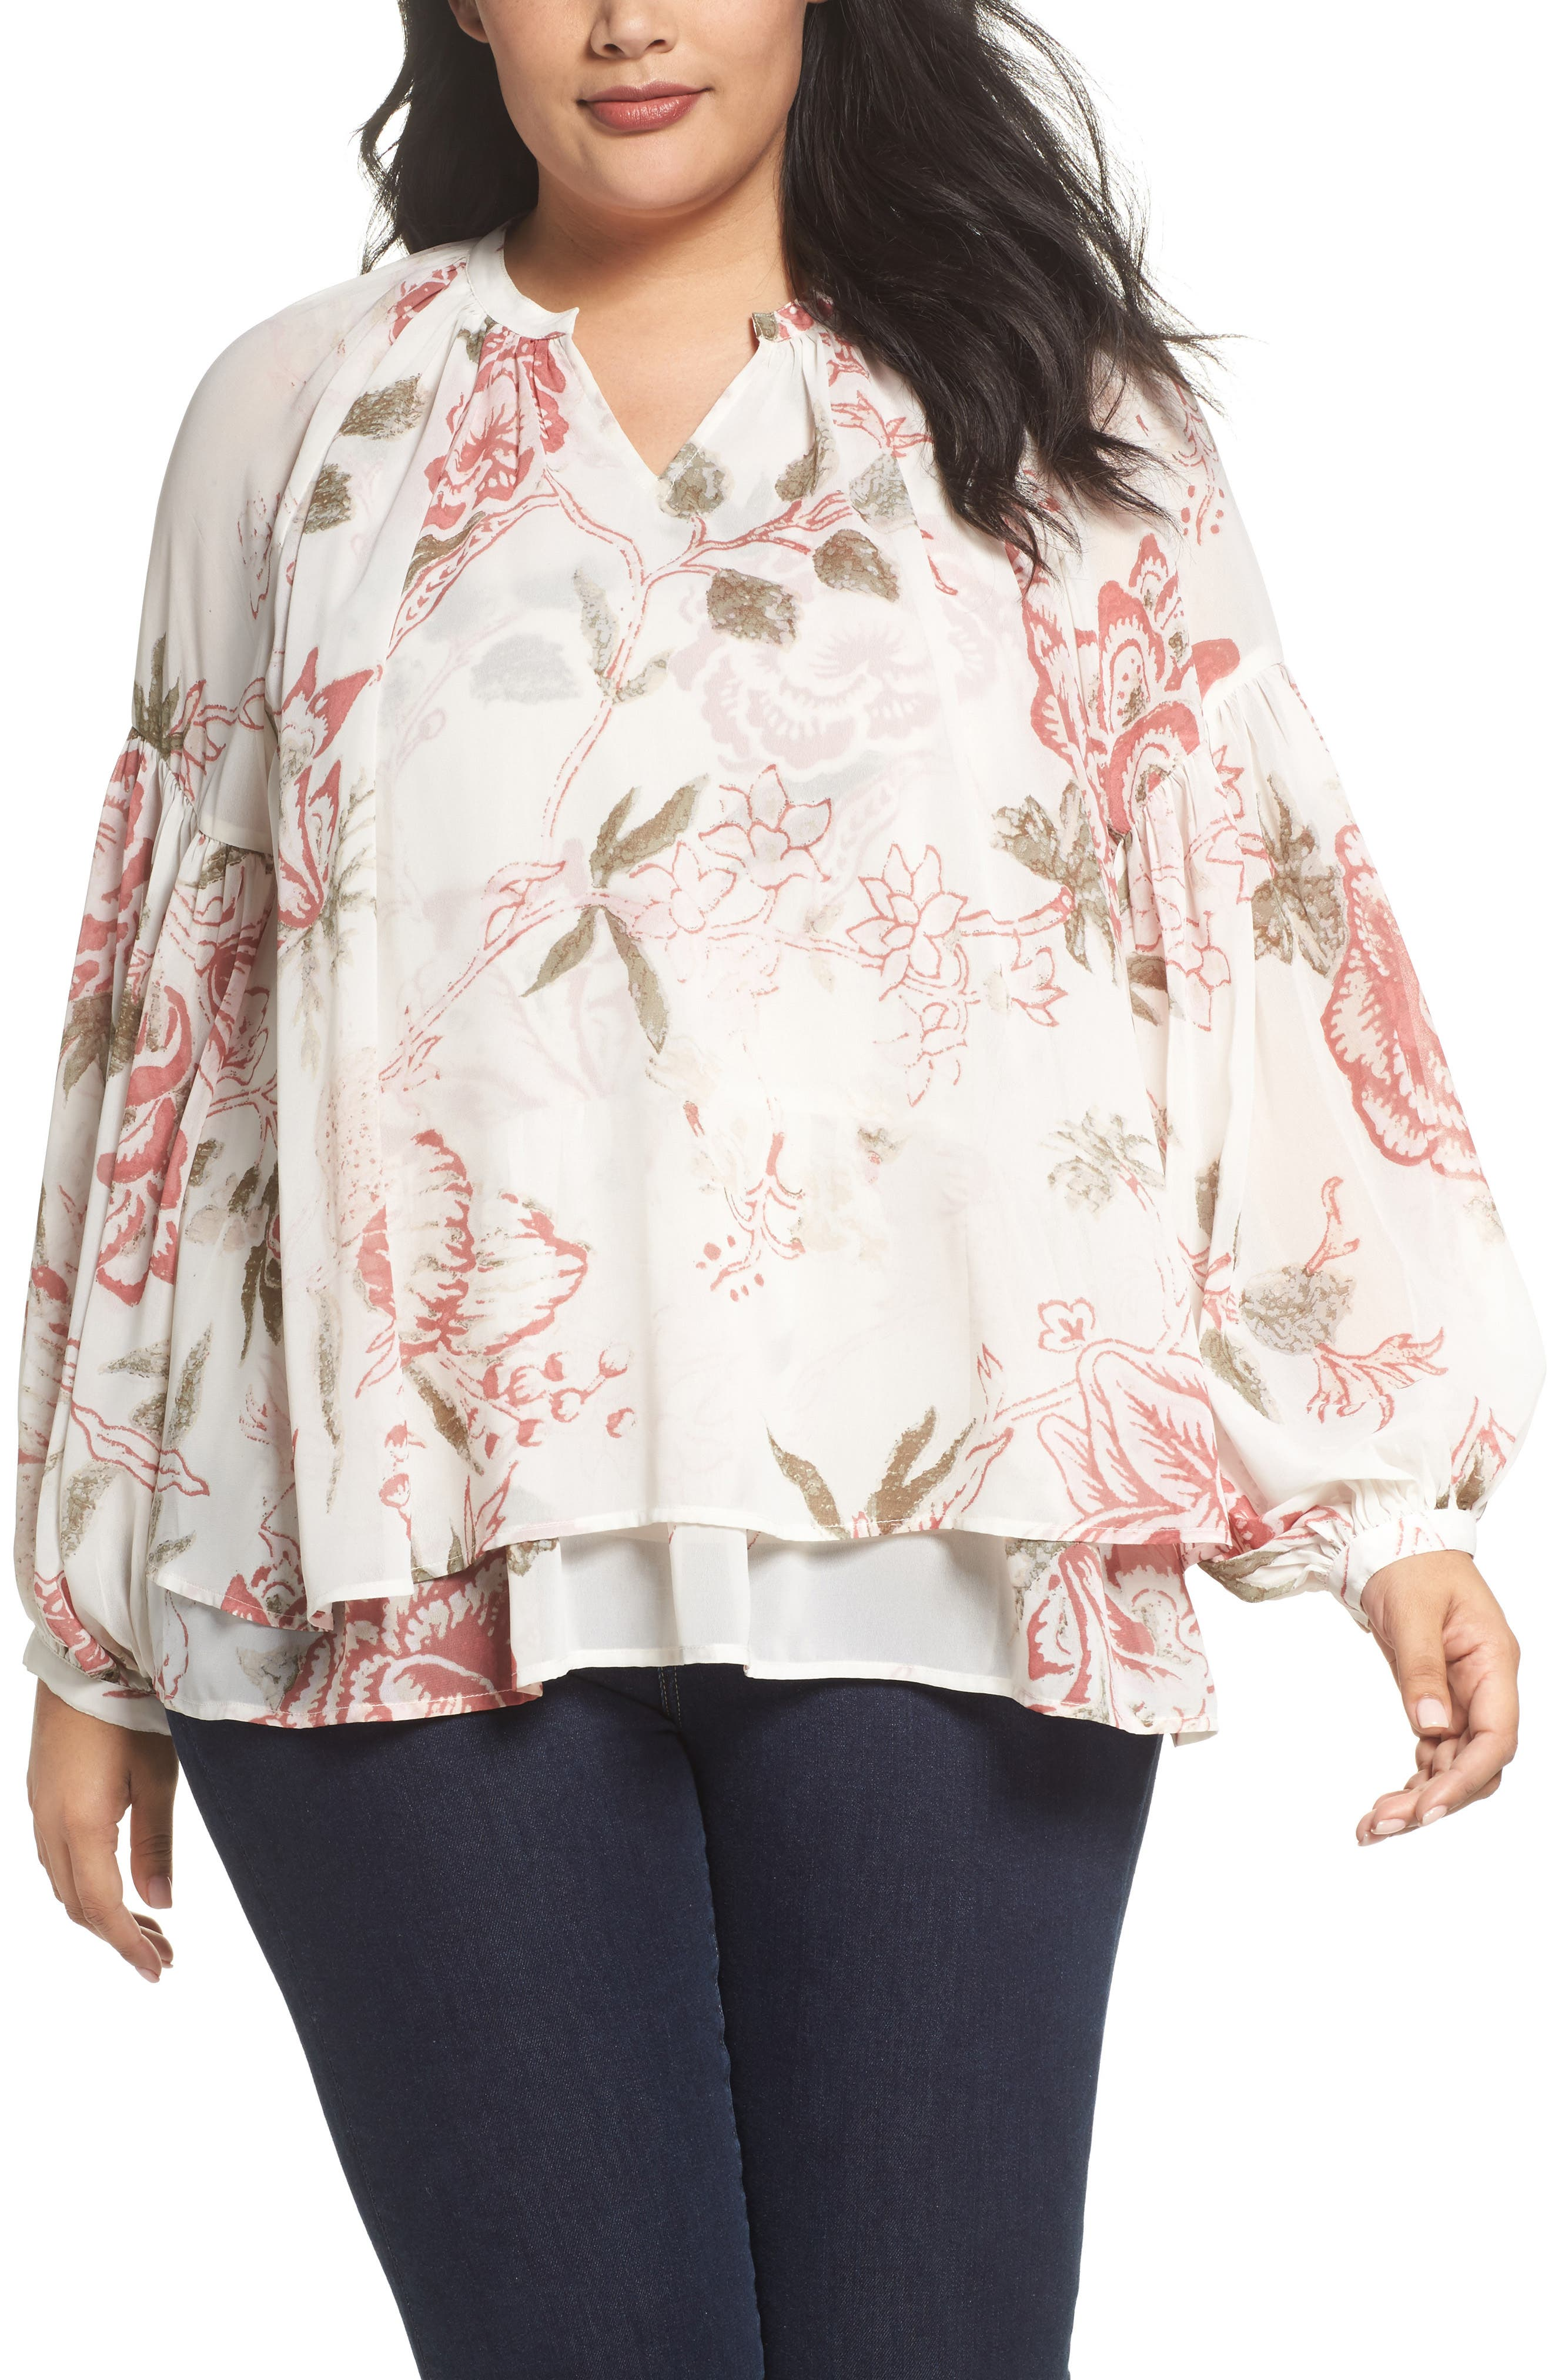 Alternate Image 1 Selected - Lucky Brand Jenna Print Peasant Top (Plus Size)